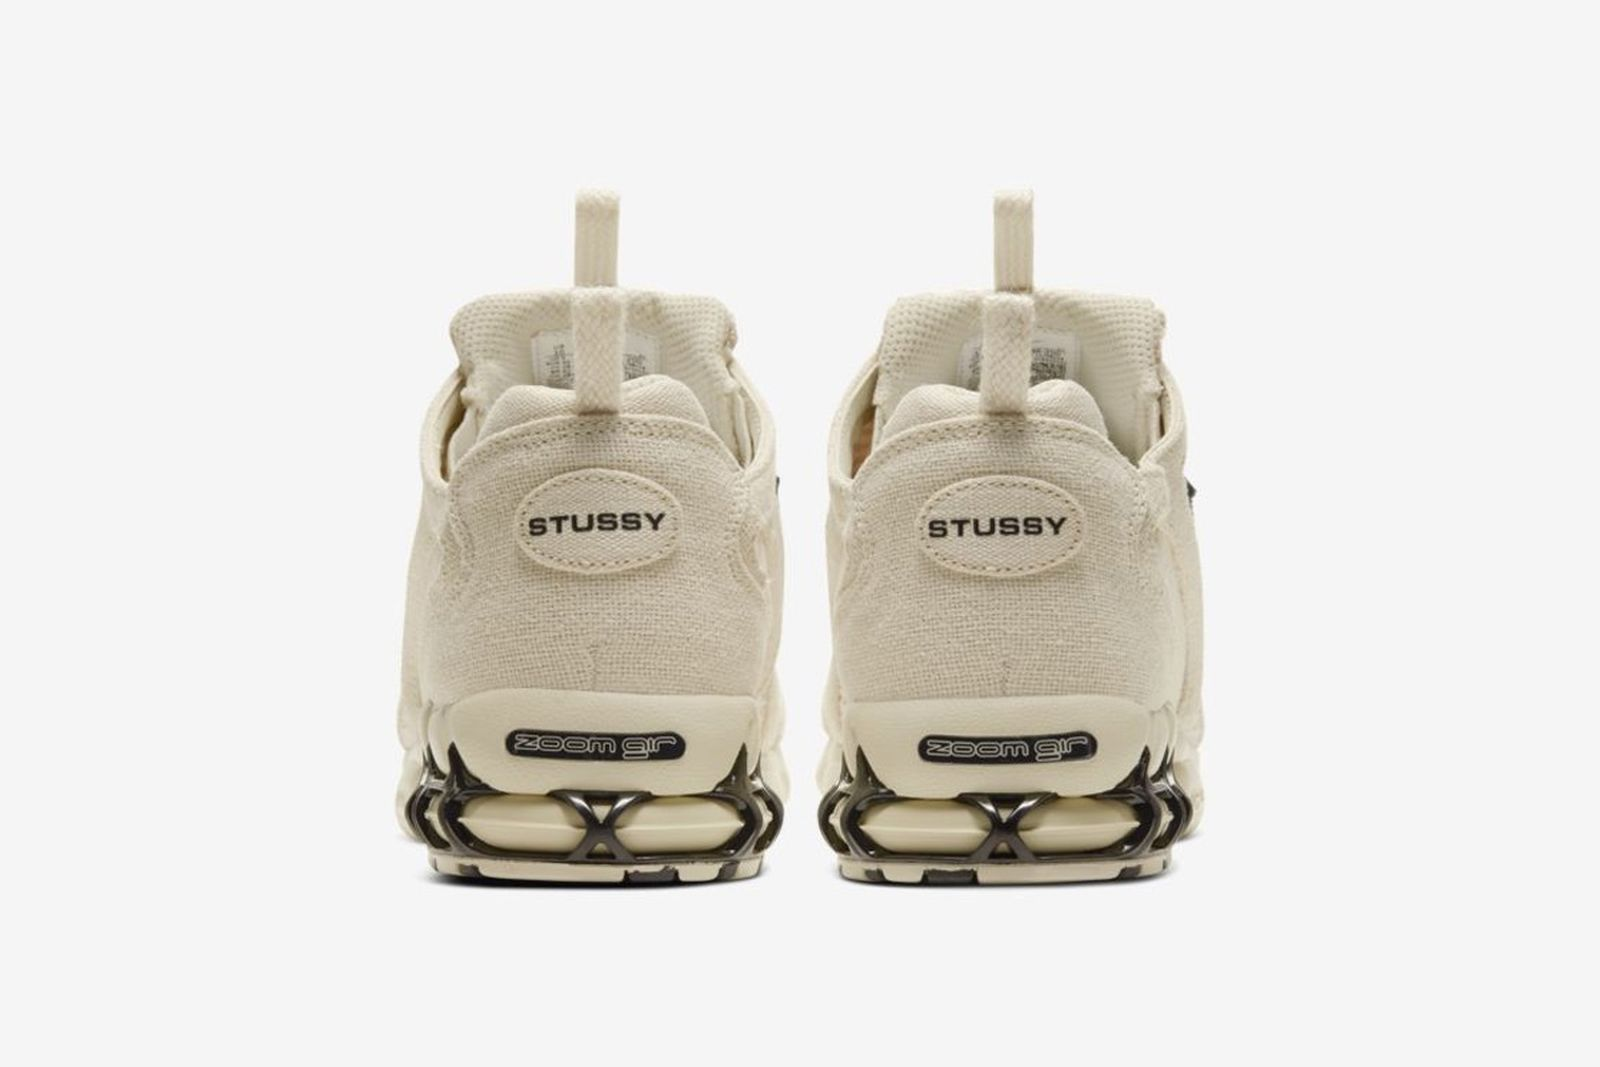 stussy-nike-zoom-spiridon-cage-2-release-date-price-01